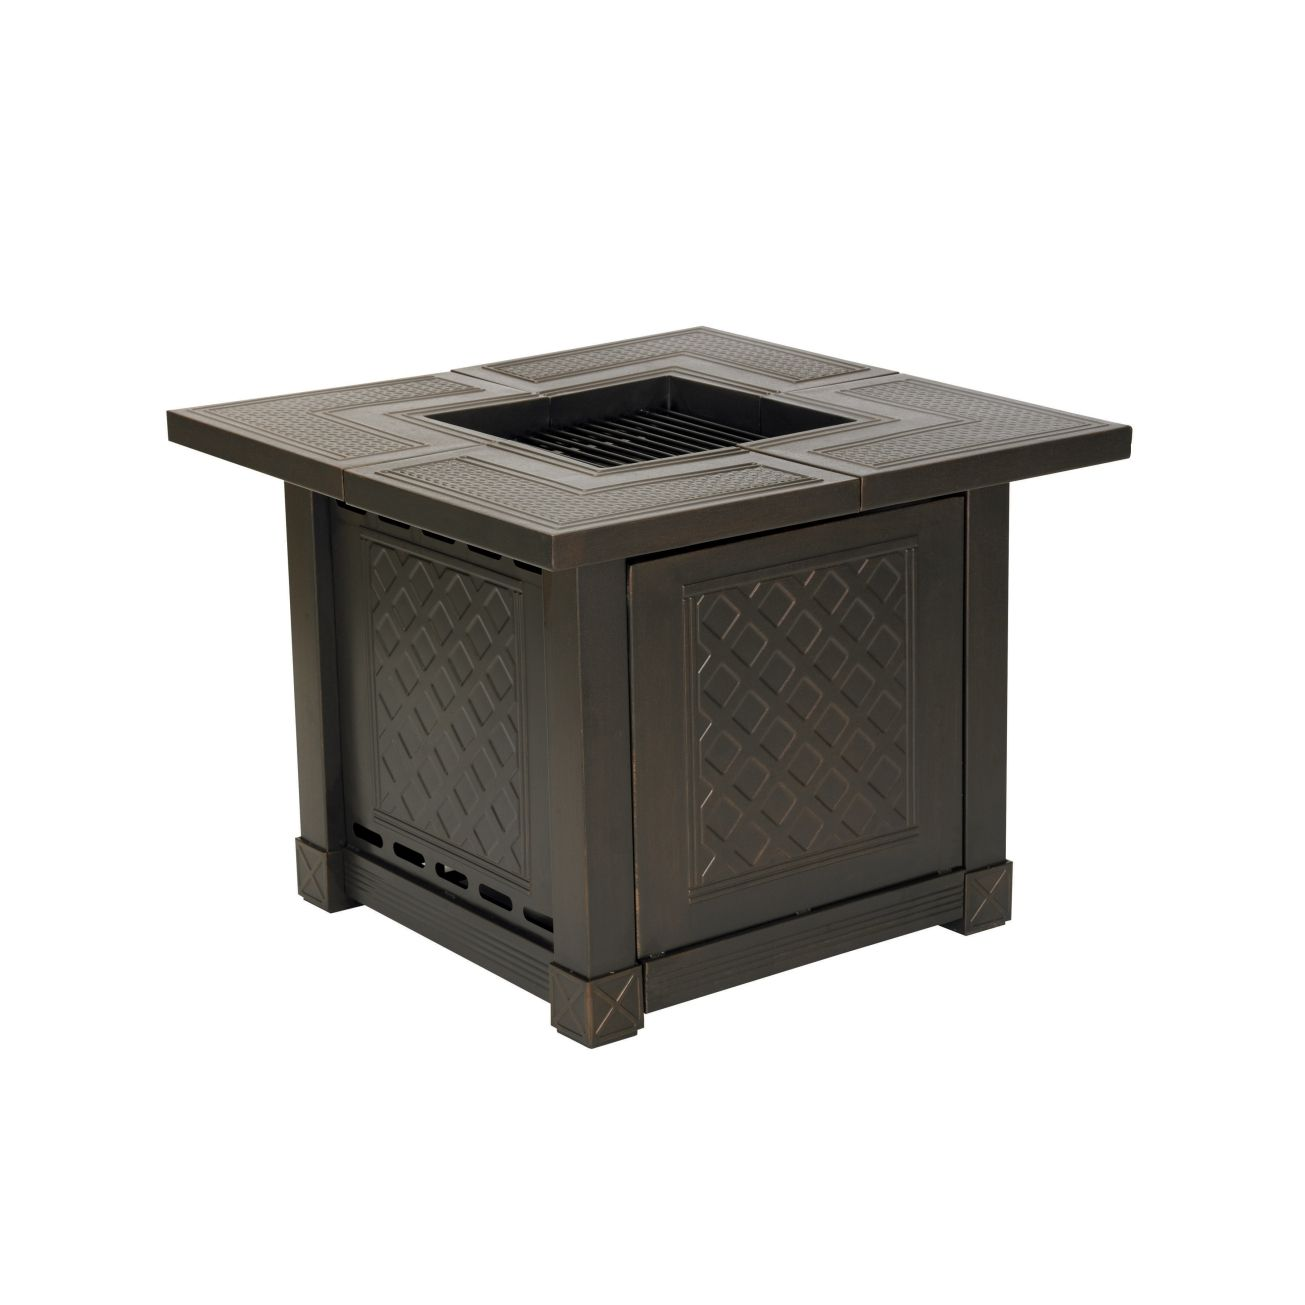 Attractive Living Accents Outdoor Fireplace Part - 7: Living Accents® Herrington Square Decorative Table Gas Fire Pit - Outdoor  Fireplaces - Ace Hardware